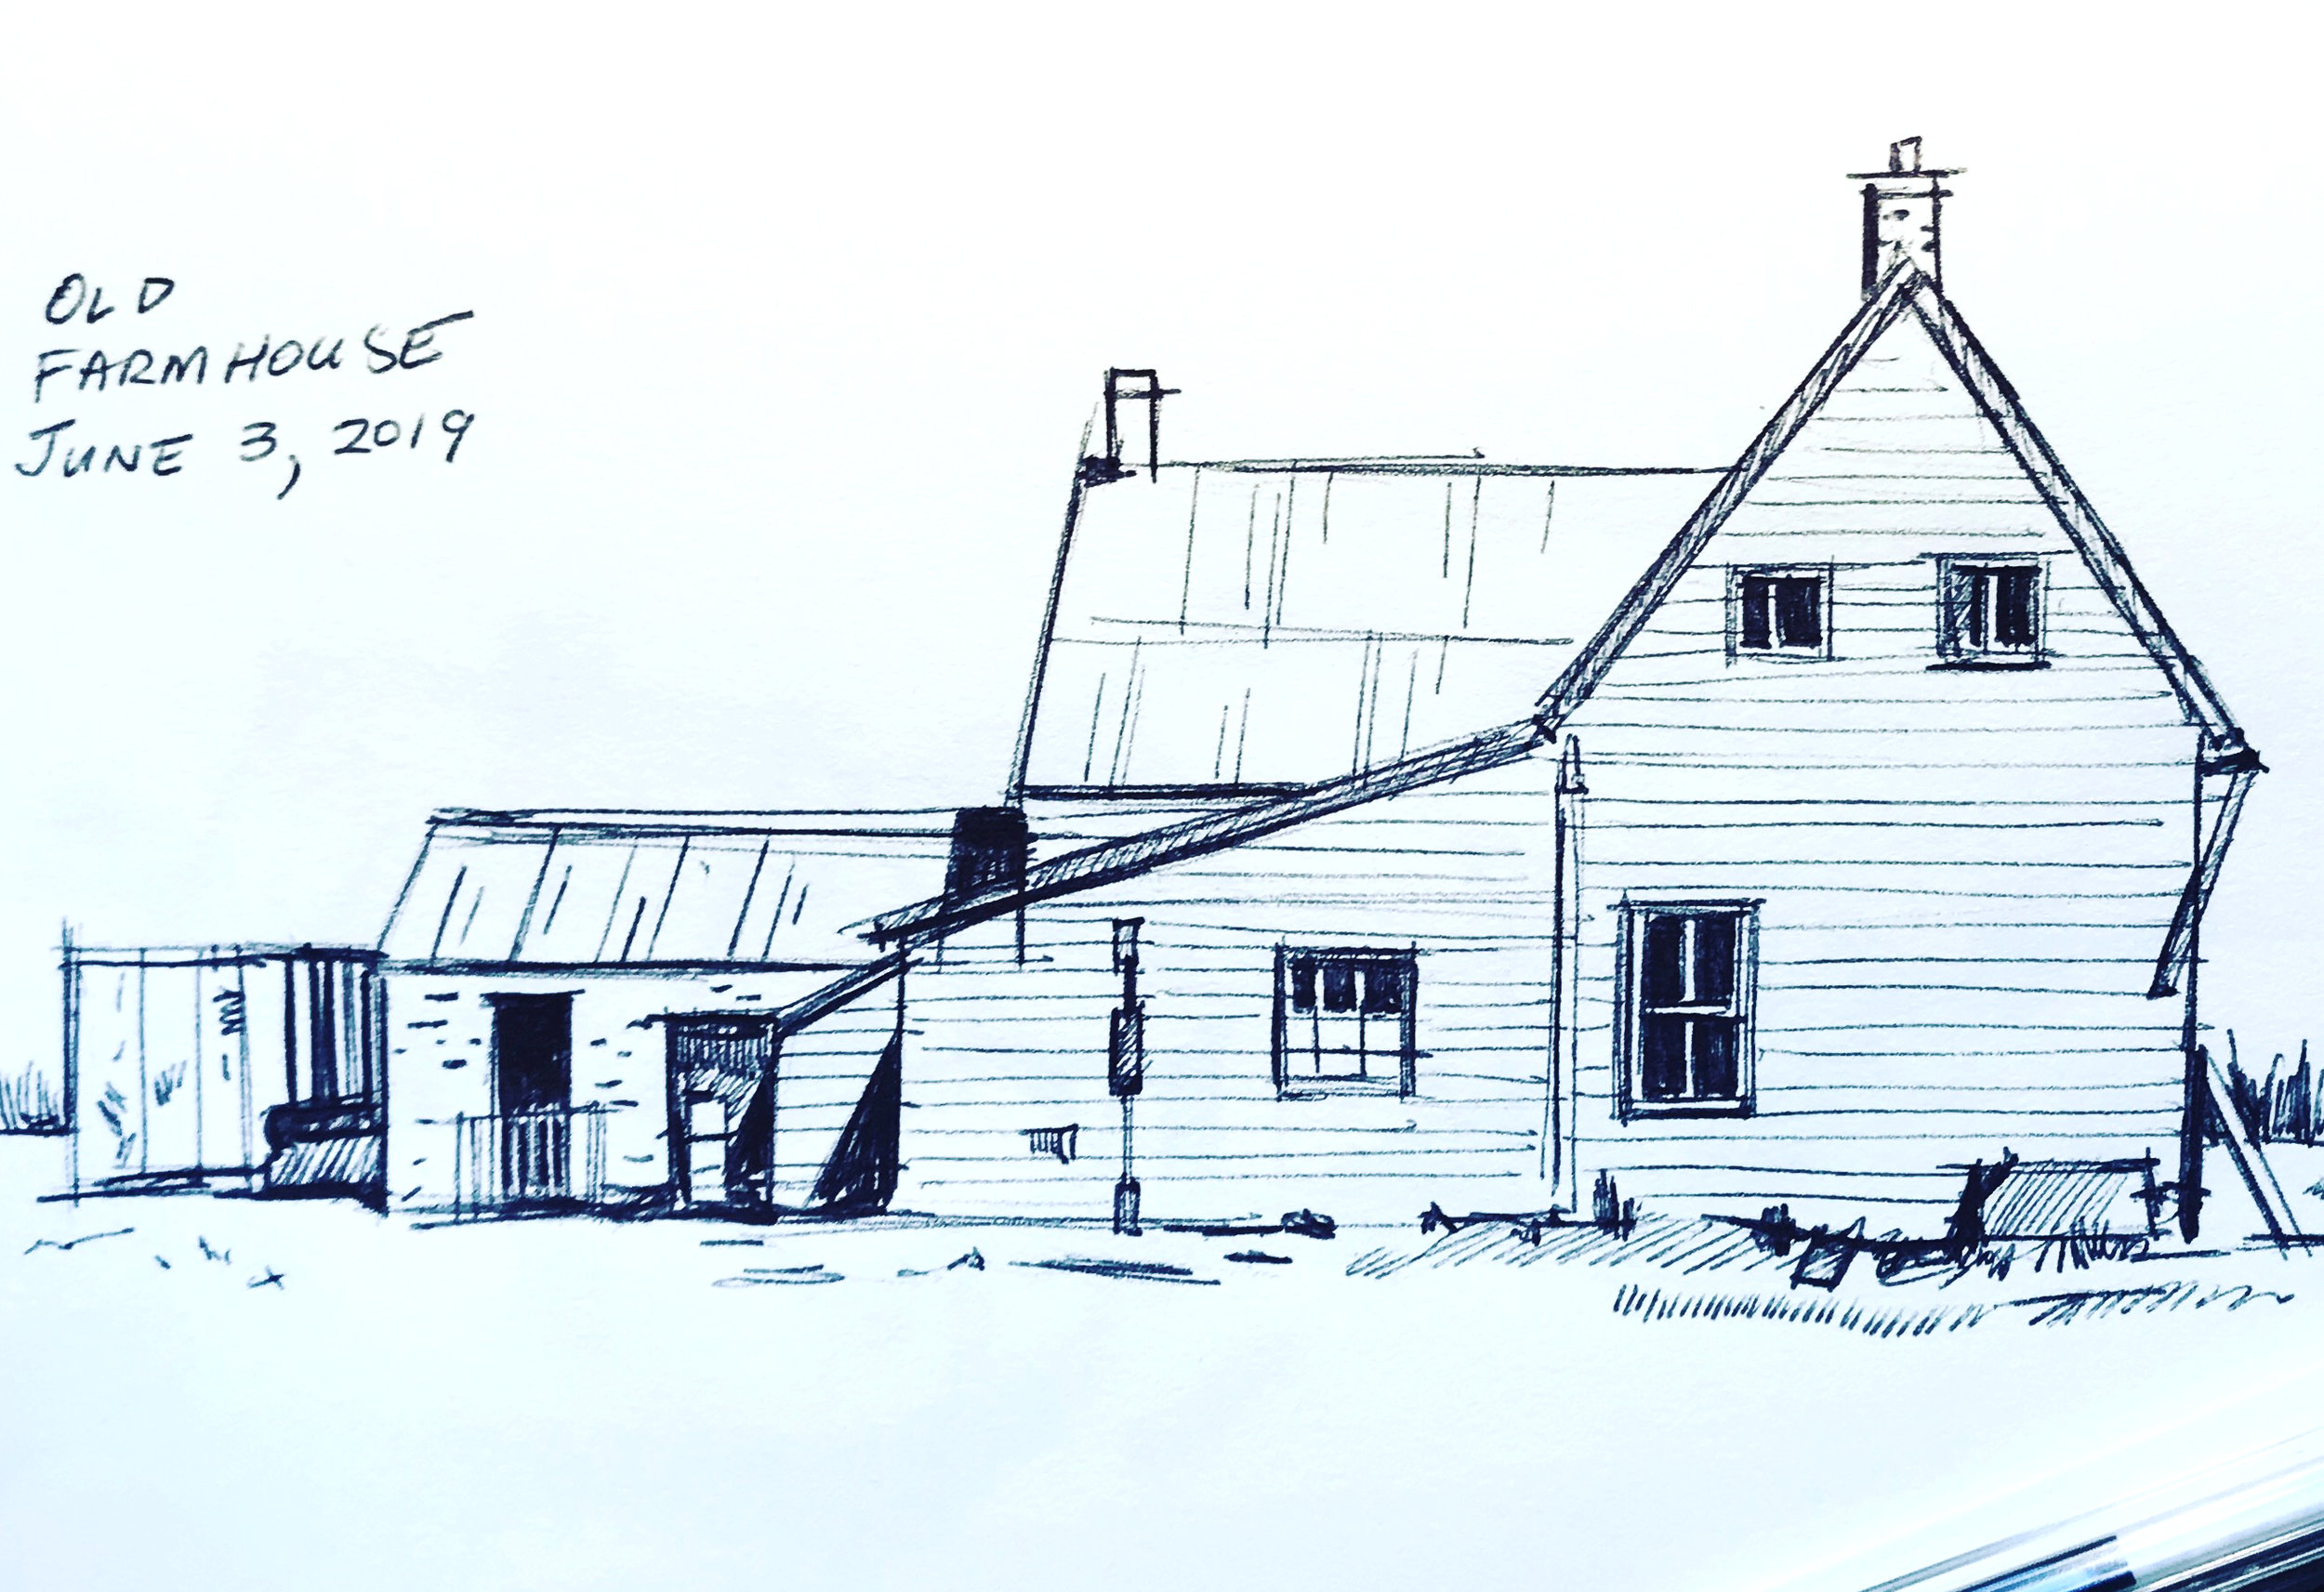 Old_Farmhouse_6_3_19.jpg